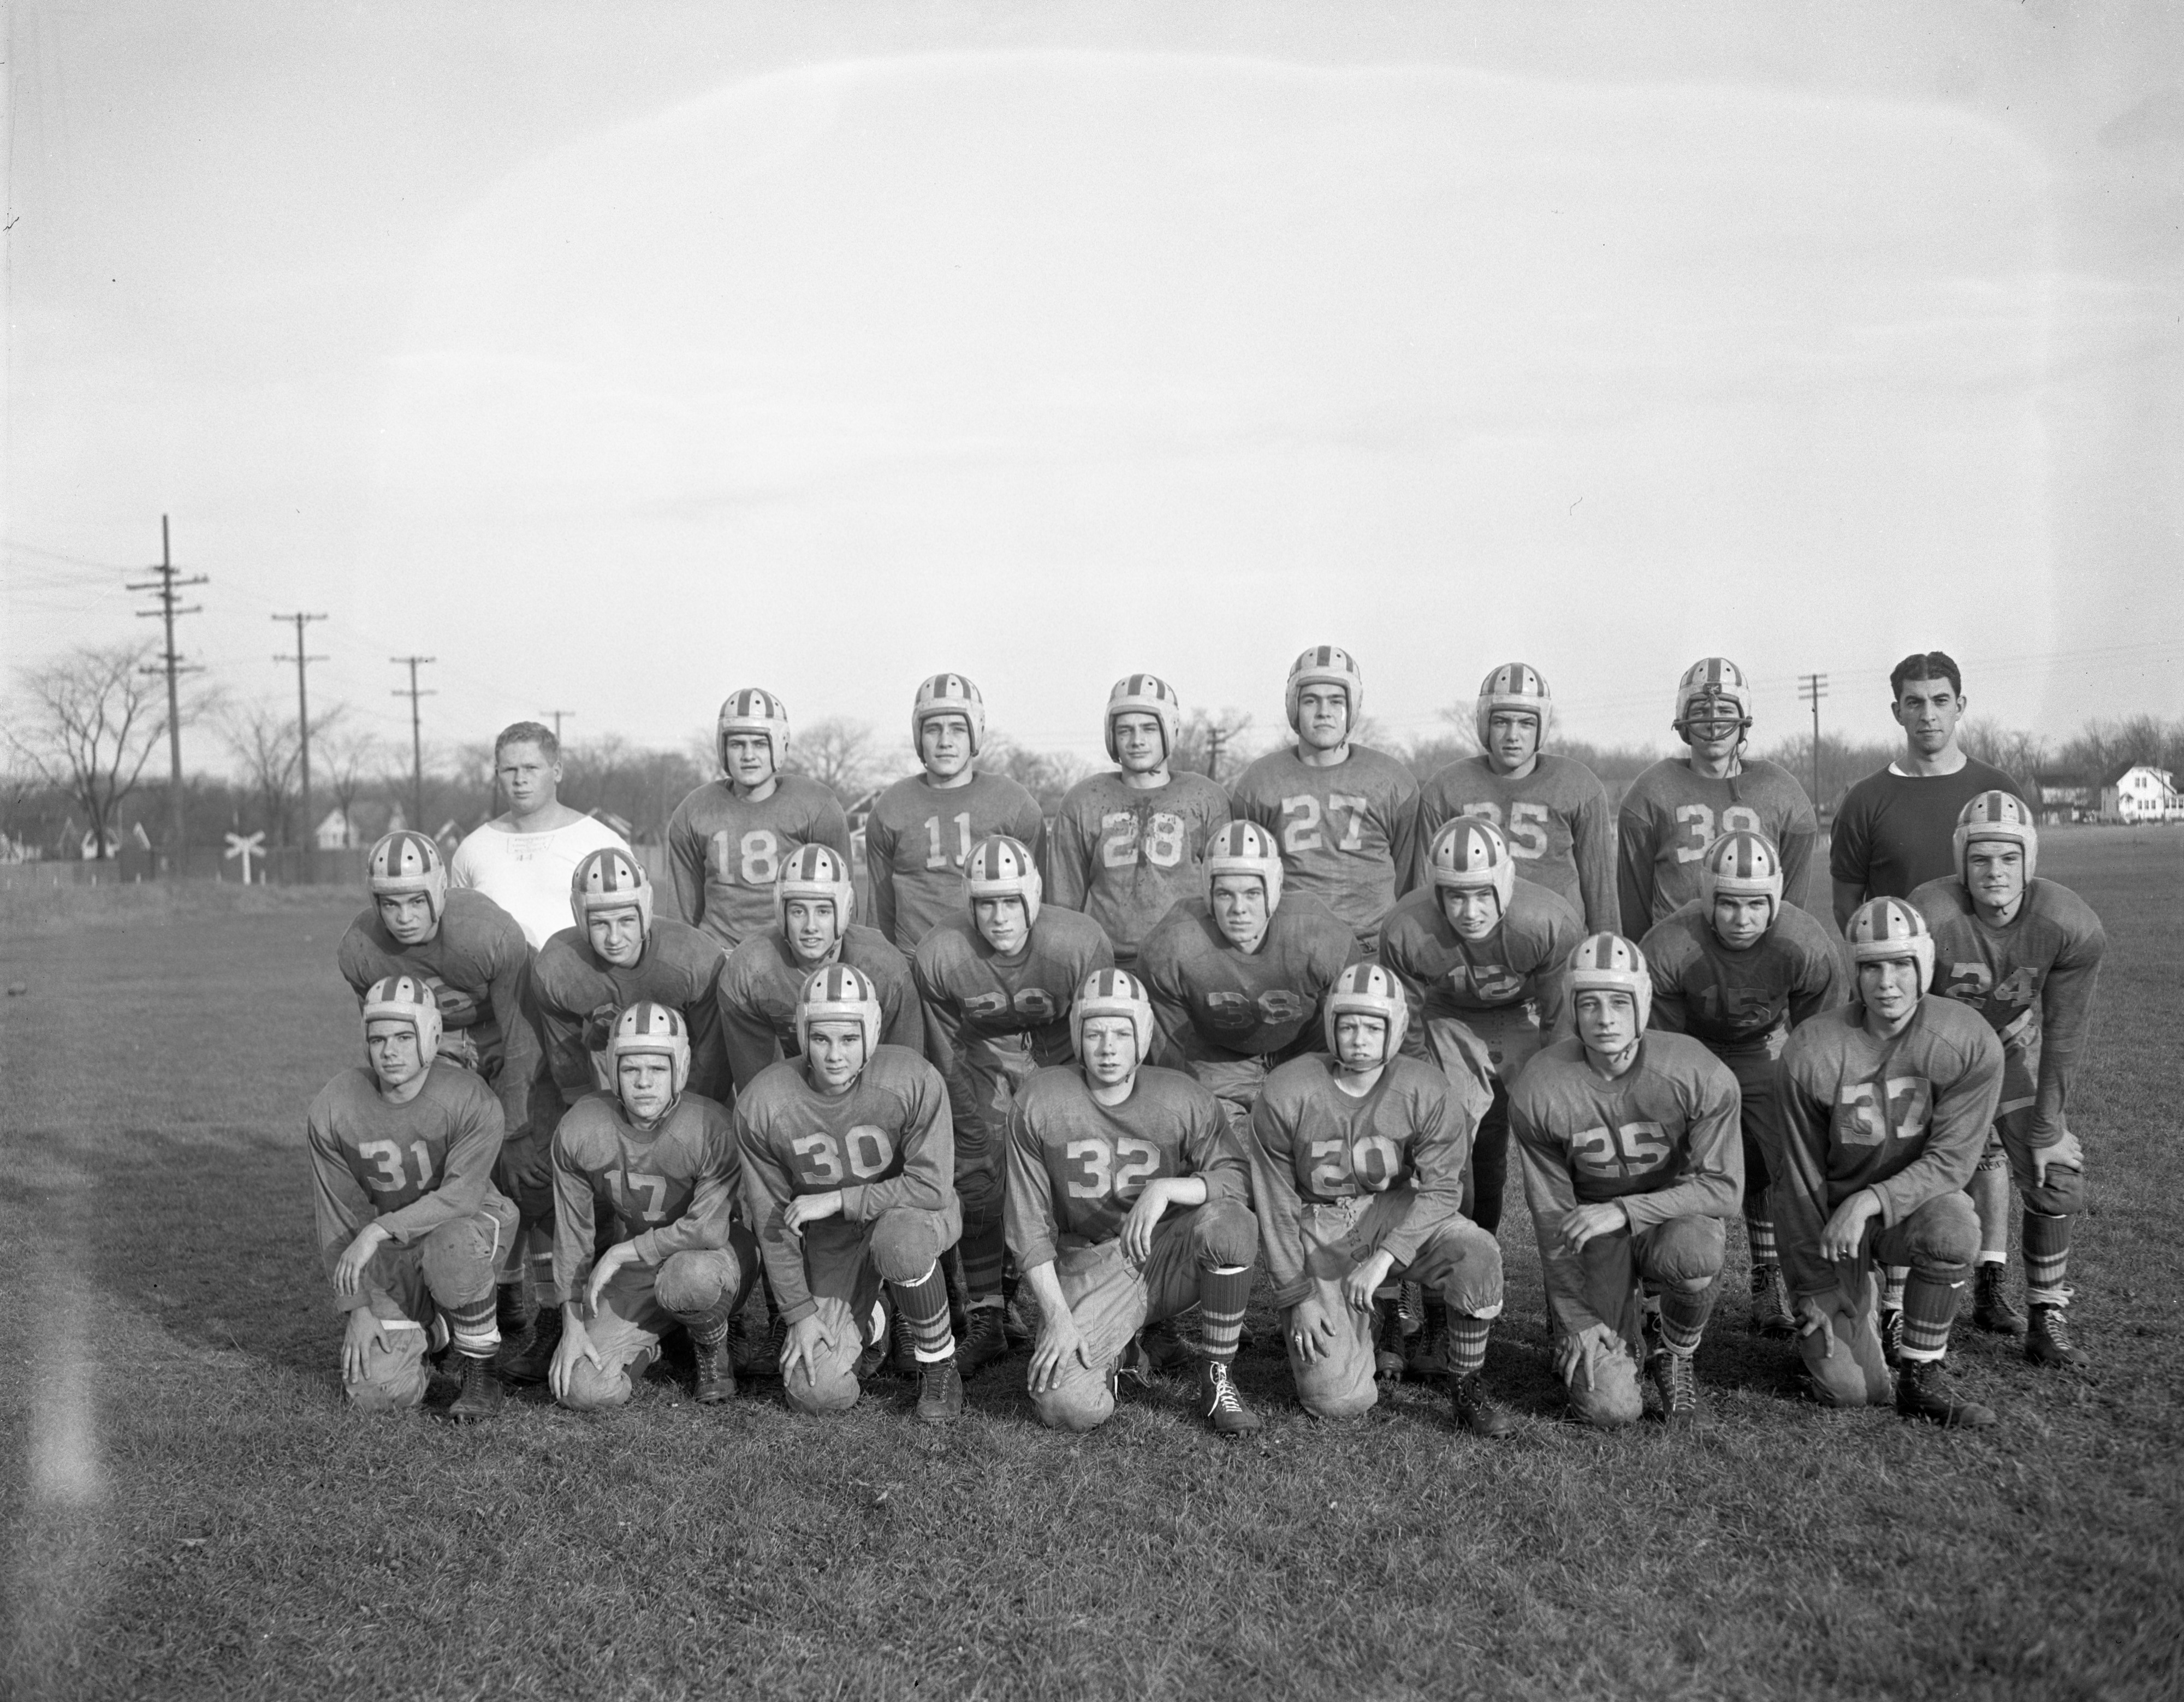 Coach Les Heidamos & The University High School Football Team, November 1945 image